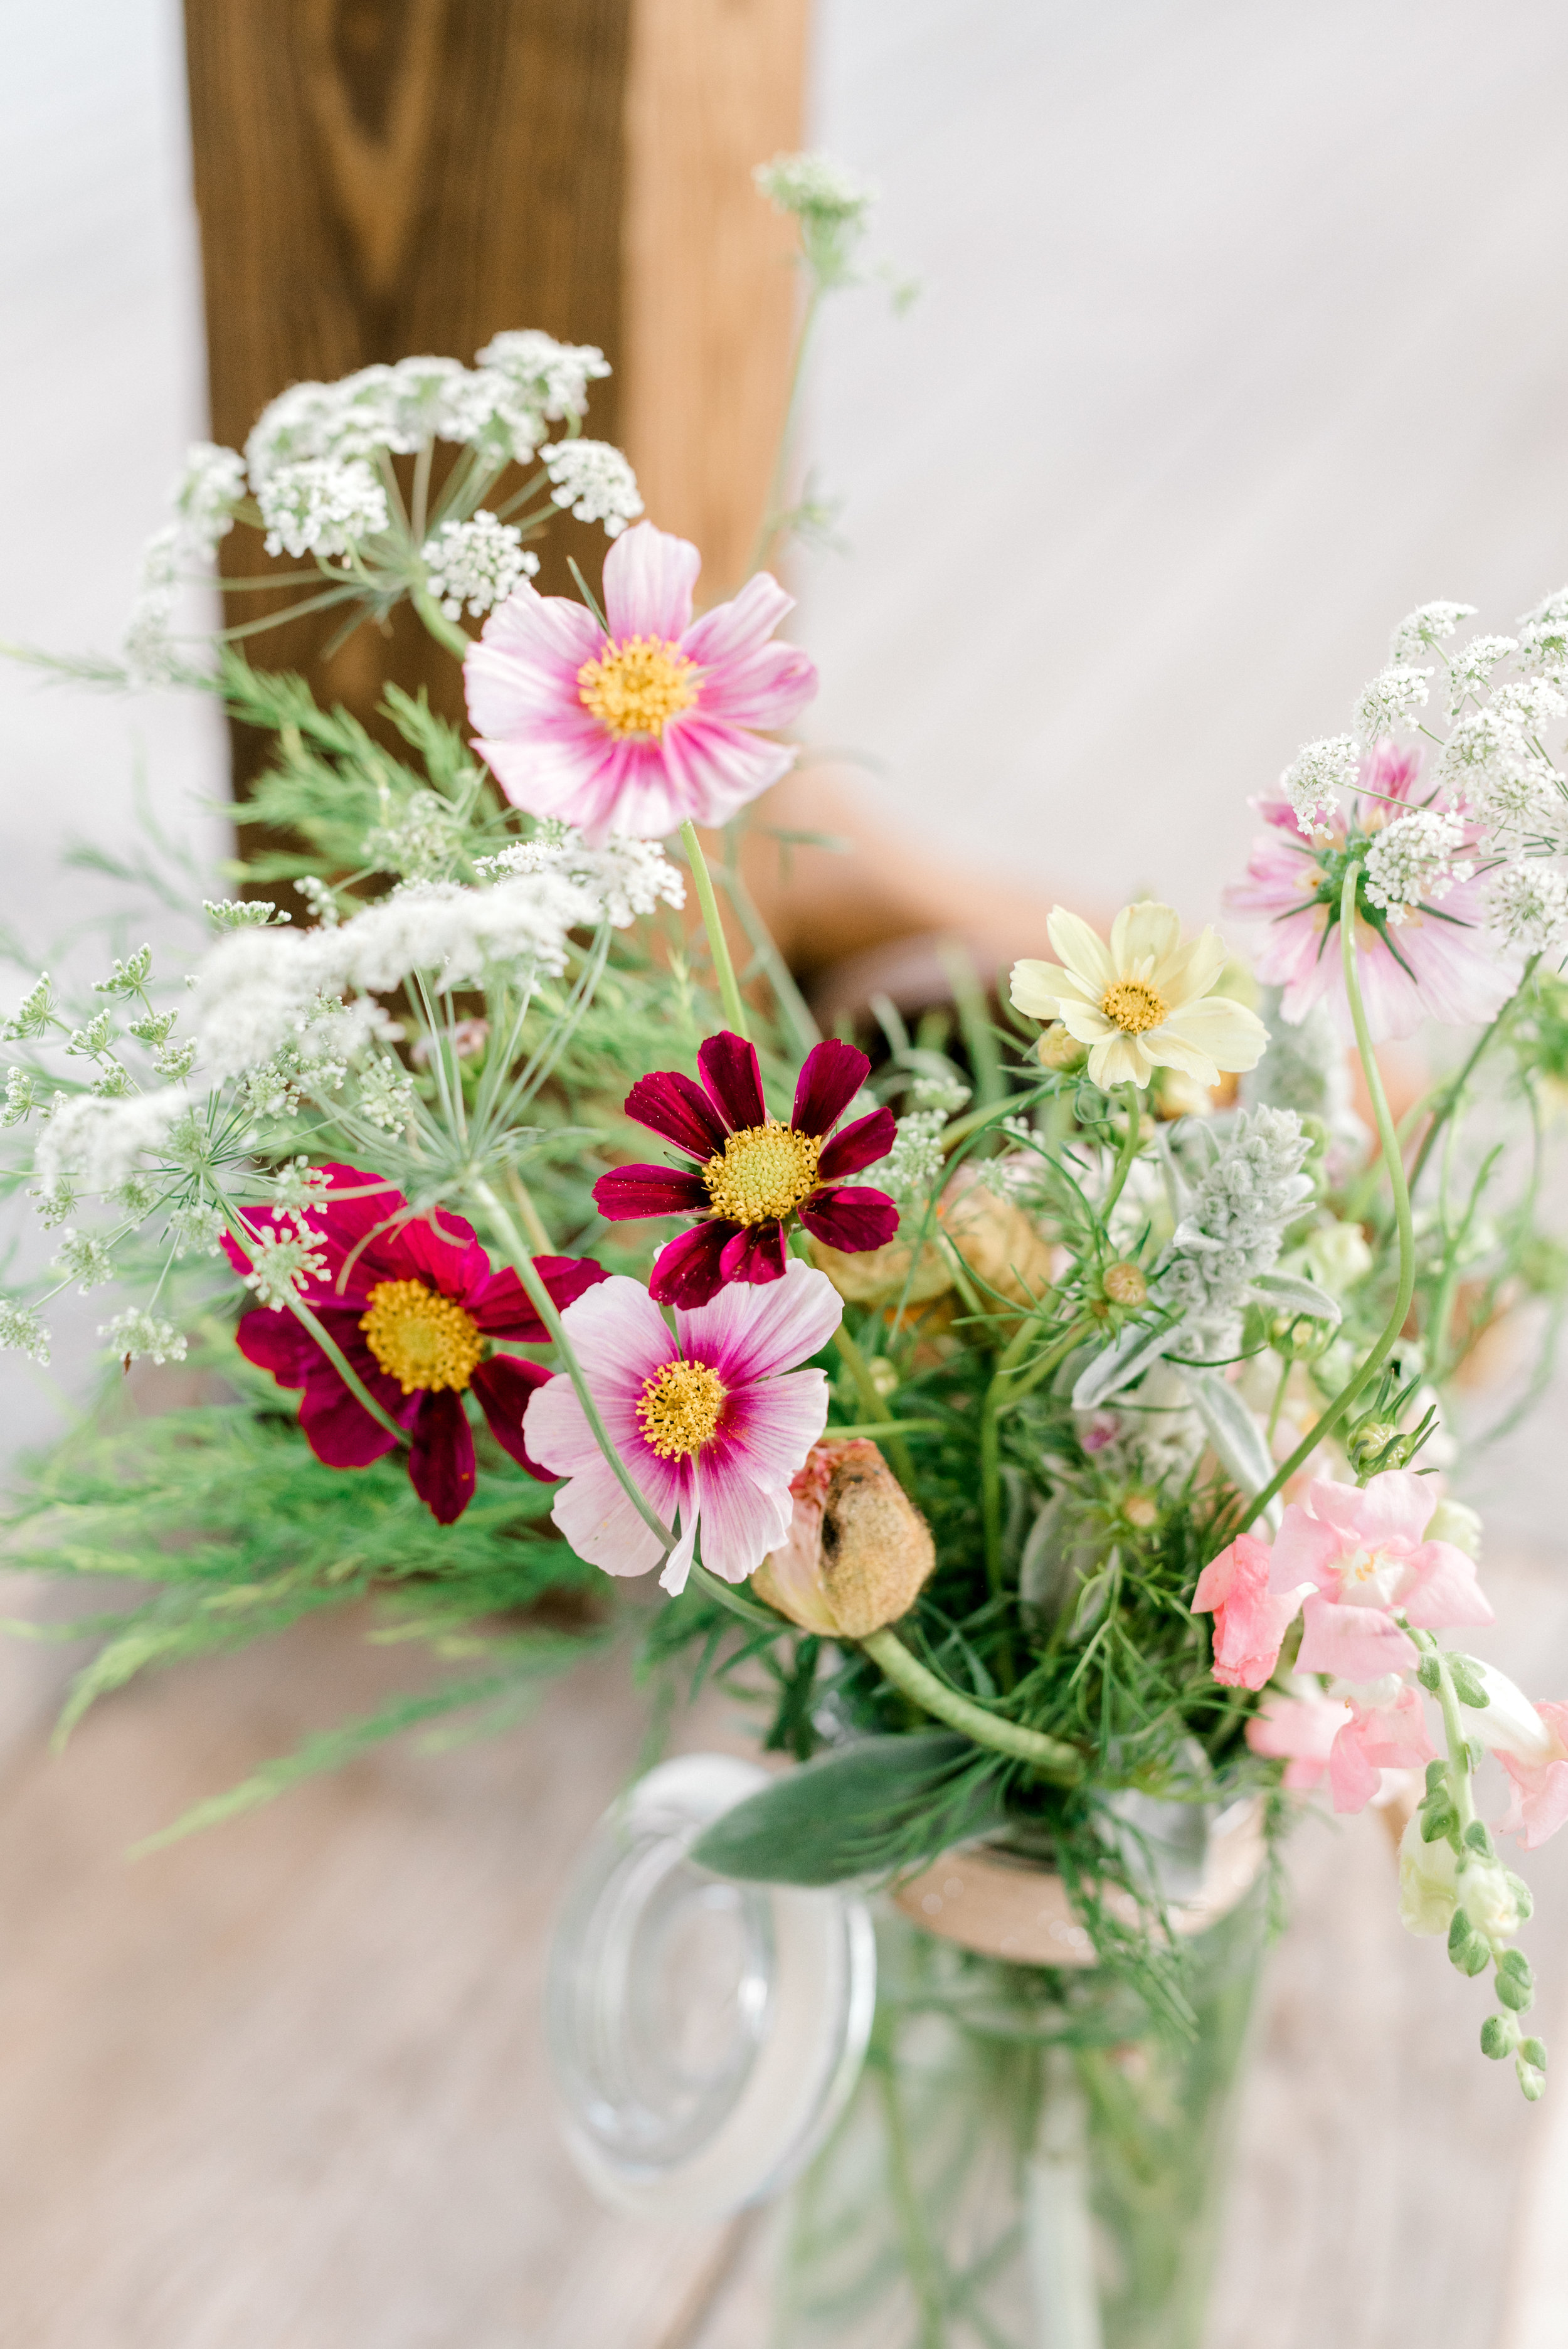 ithaca-farmers-market-wedding-haley-richter-photography-055.jpg